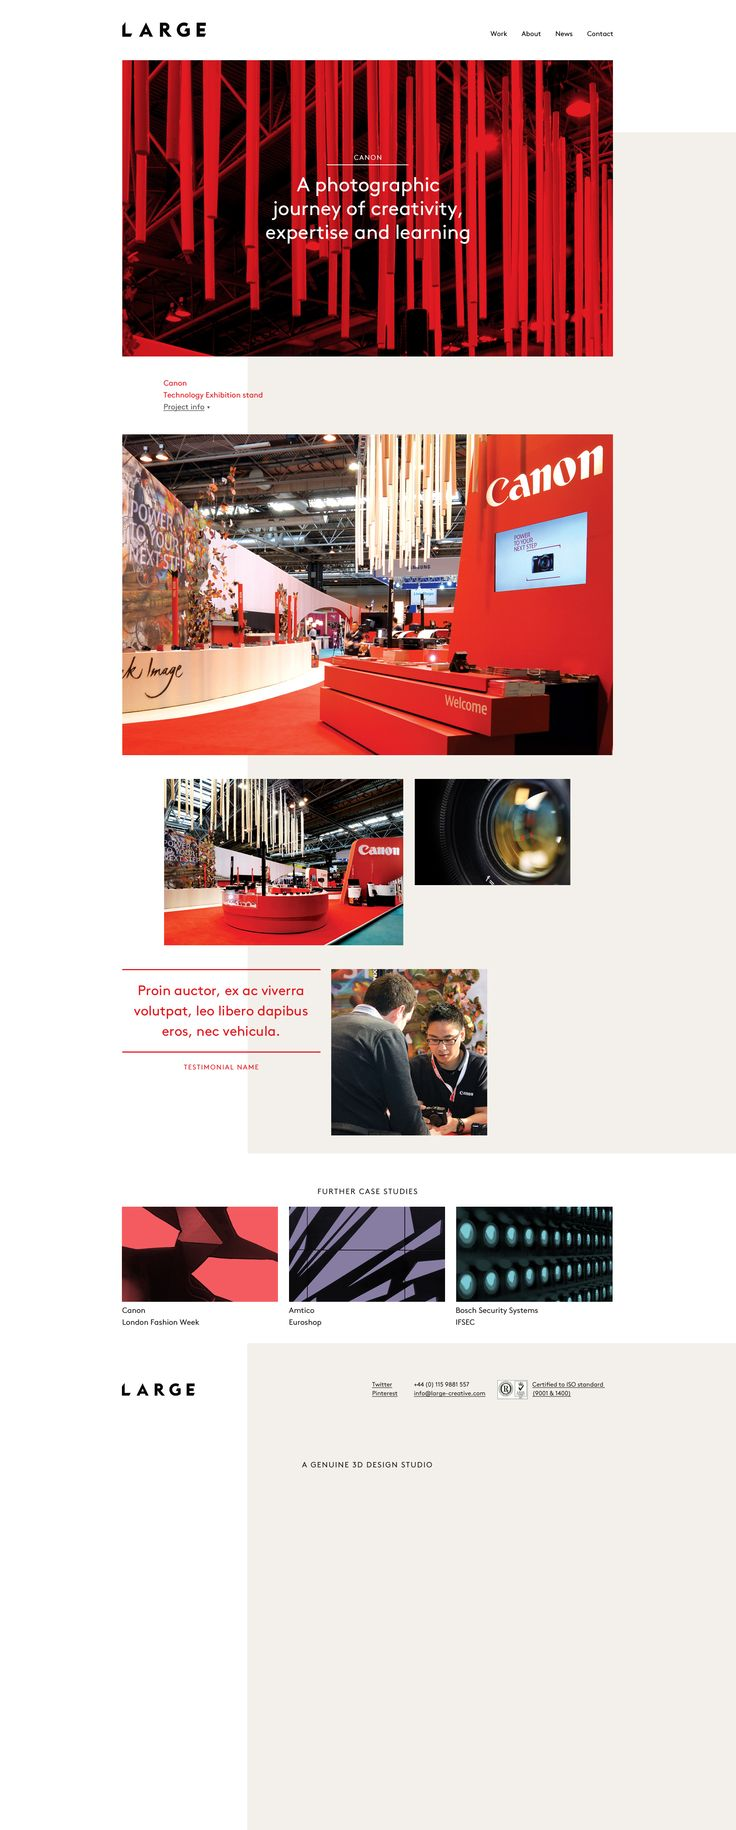 Large case study – Art Direction of the use of colour and imagery. A colour can be attributed to a project for use on the headings and blockquotes. Flexible use of imagery (layout).